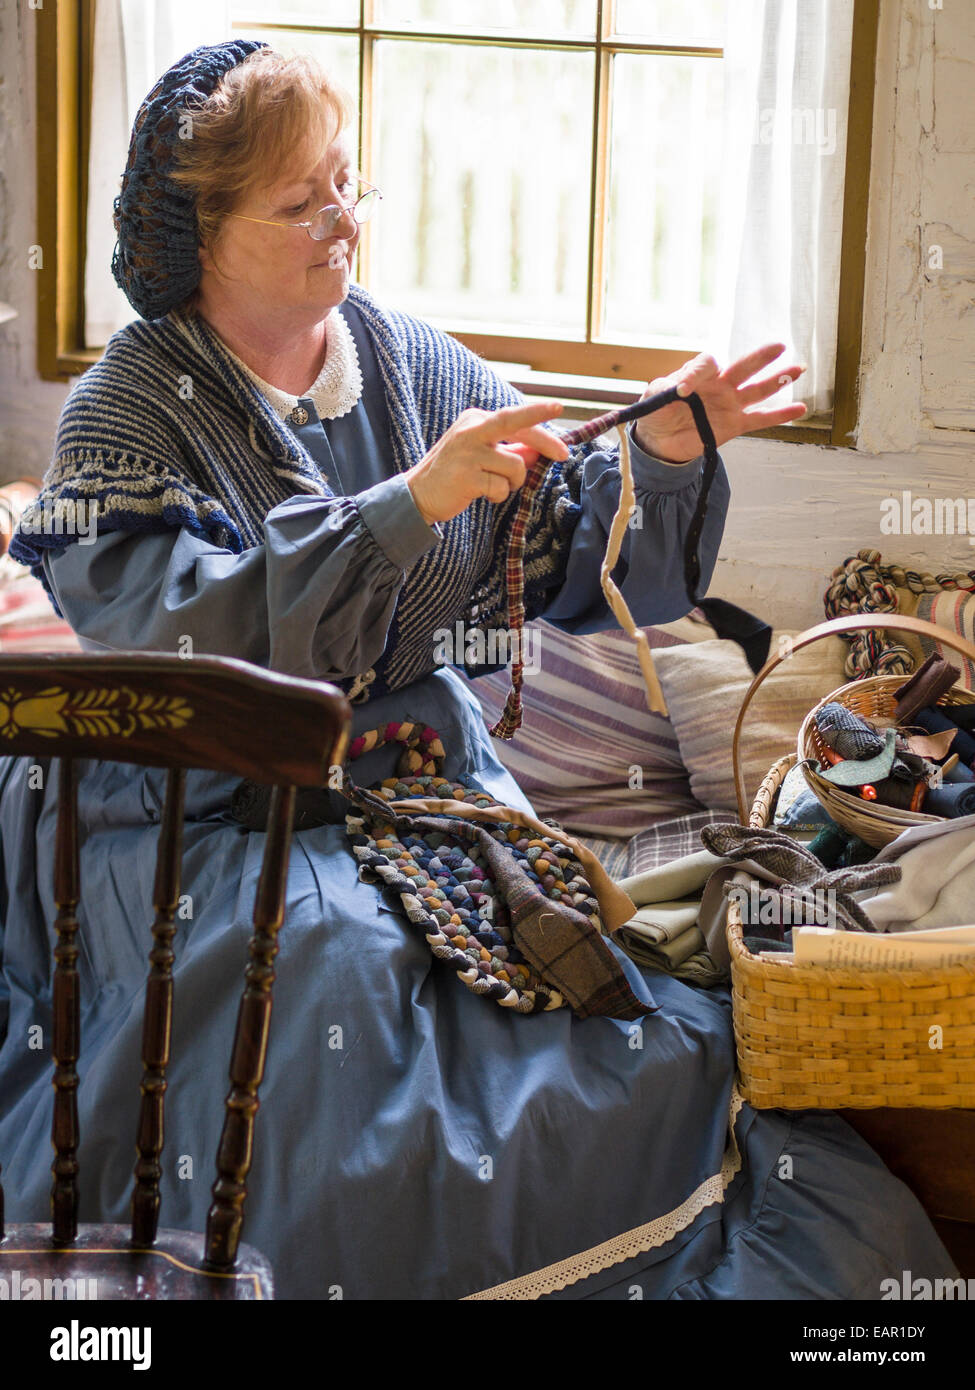 Making a Rag Rug: domestic labour. A woman in costume picks out the next element in her rag rug. - Stock Image